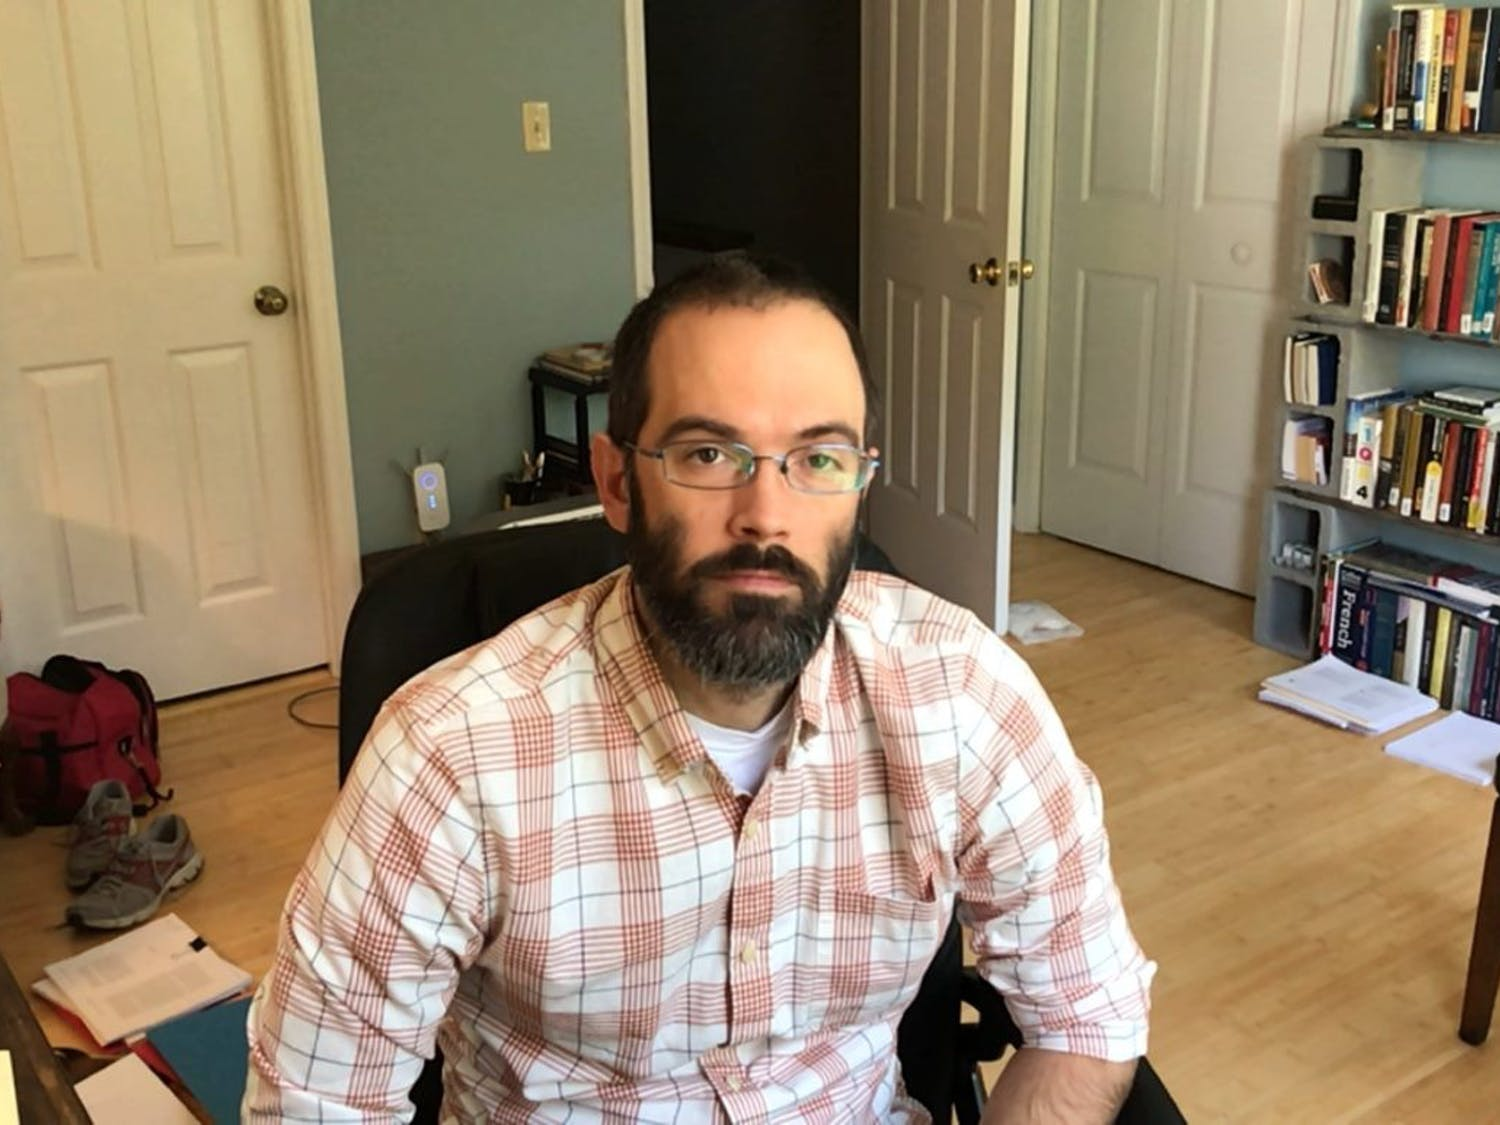 Bryce McCormick, a TA for Introduction to Early Judaism, poses from his home for a virtual portrait on Thursday, Oct. 15, 2020.